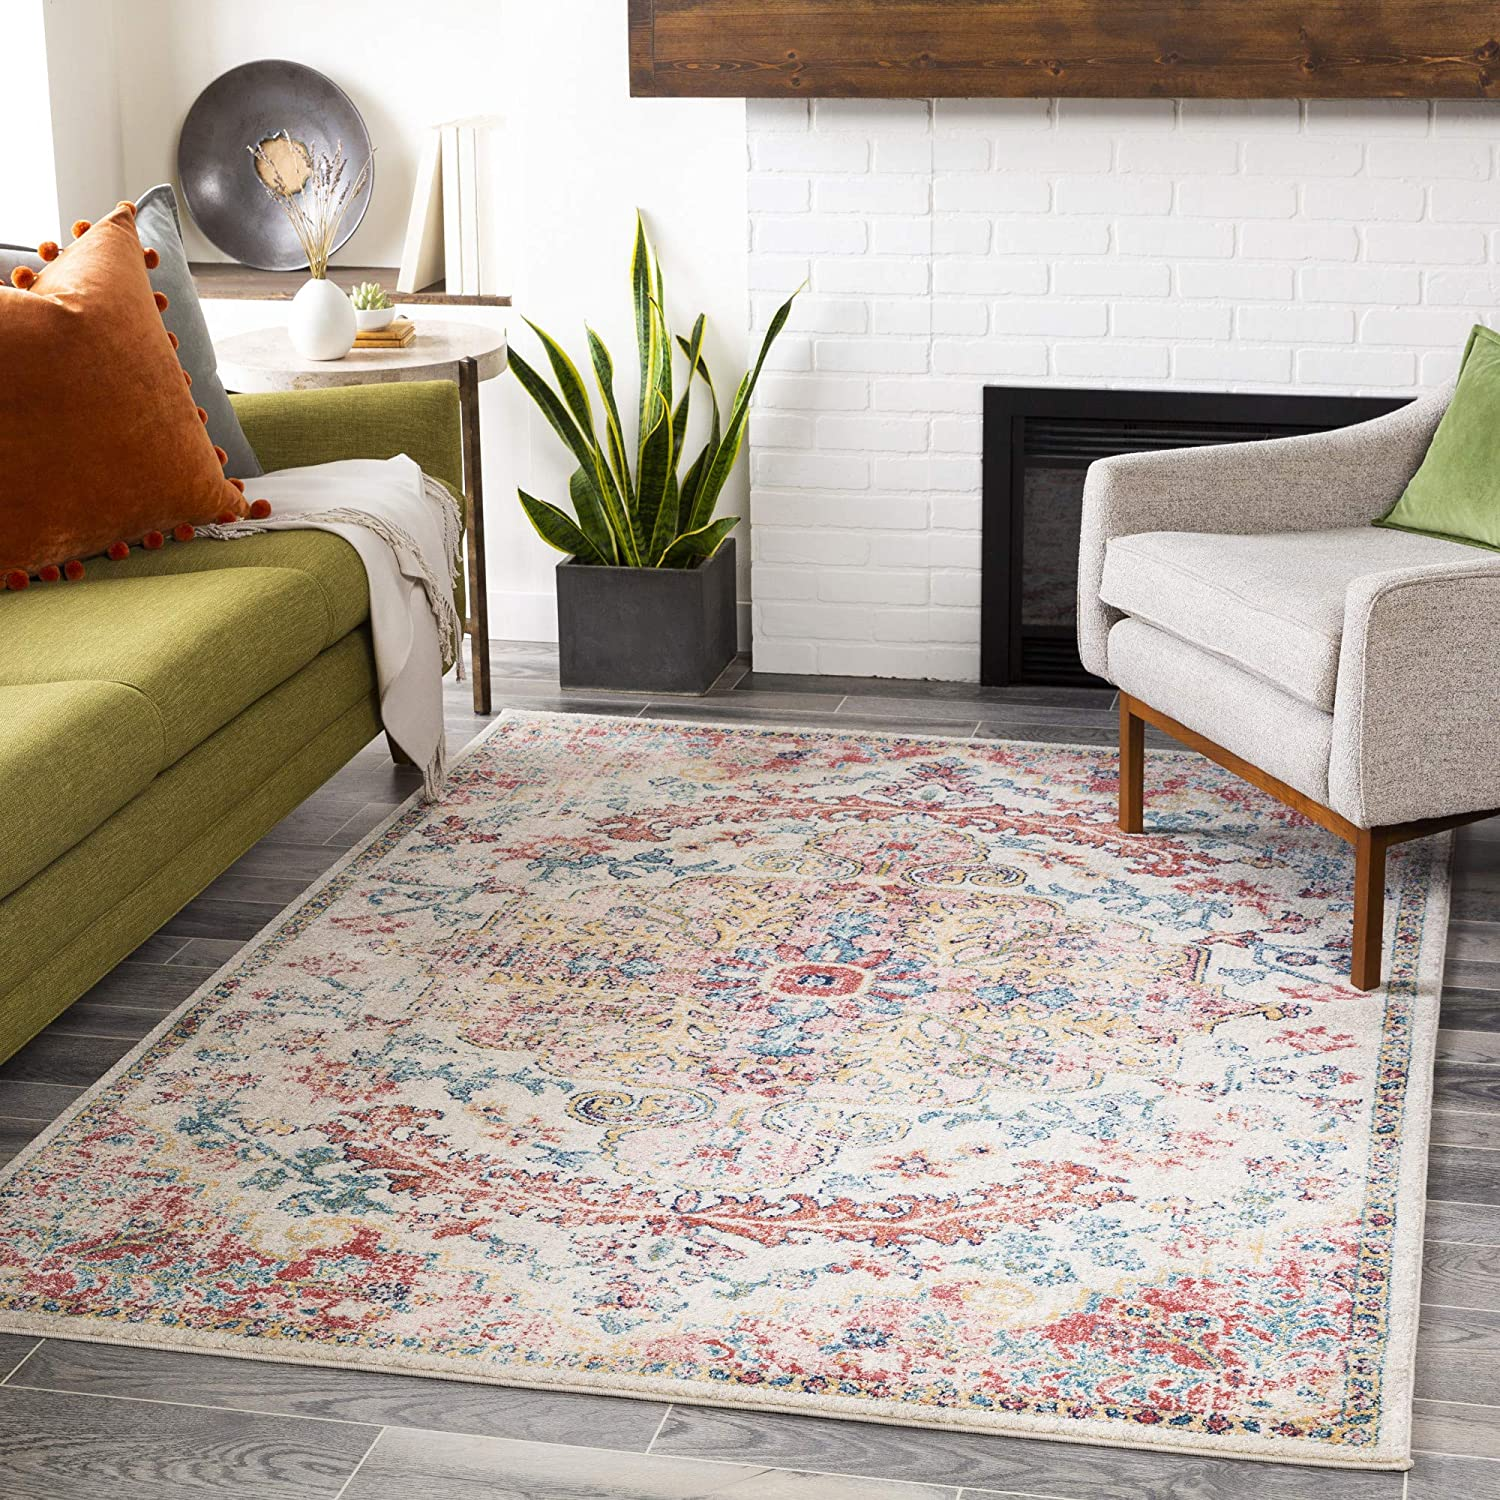 Artistic Weavers Odelia Daily bargain sale Vintage Bohemian Area Feet 7 Rug We OFFer at cheap prices 10 Inc